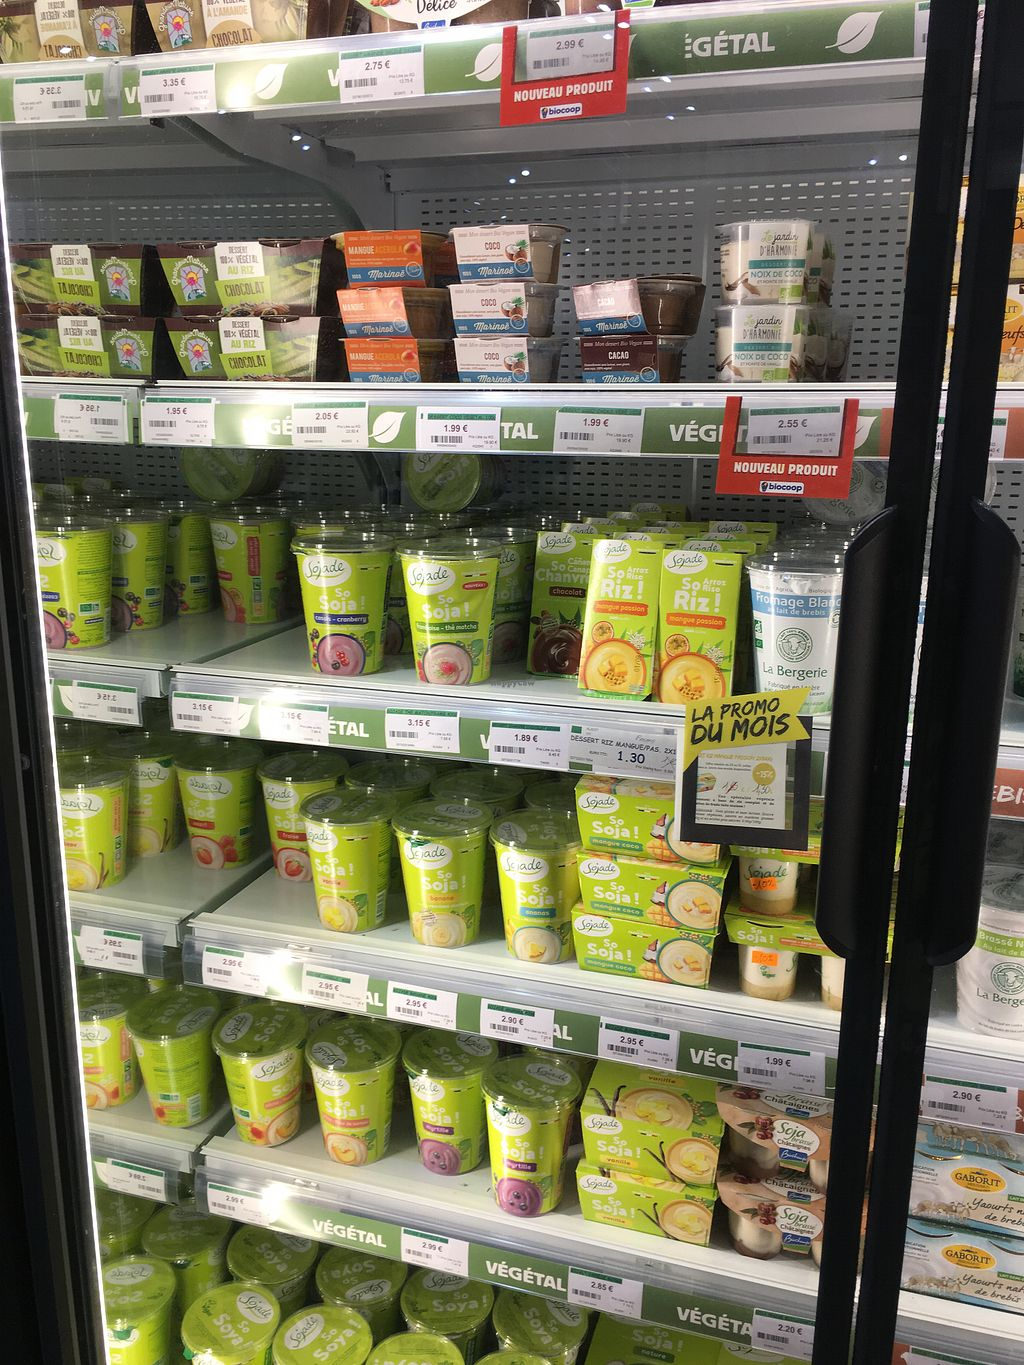 """Photo of Biocoop L'Onde Bio  by <a href=""""/members/profile/Siup"""" class=""""title__title"""">Siup</a> <br/>Vegan yogurt  <br/> July 26, 2018  - <a href='/contact/abuse/image/53399/438488'>Report</a>"""